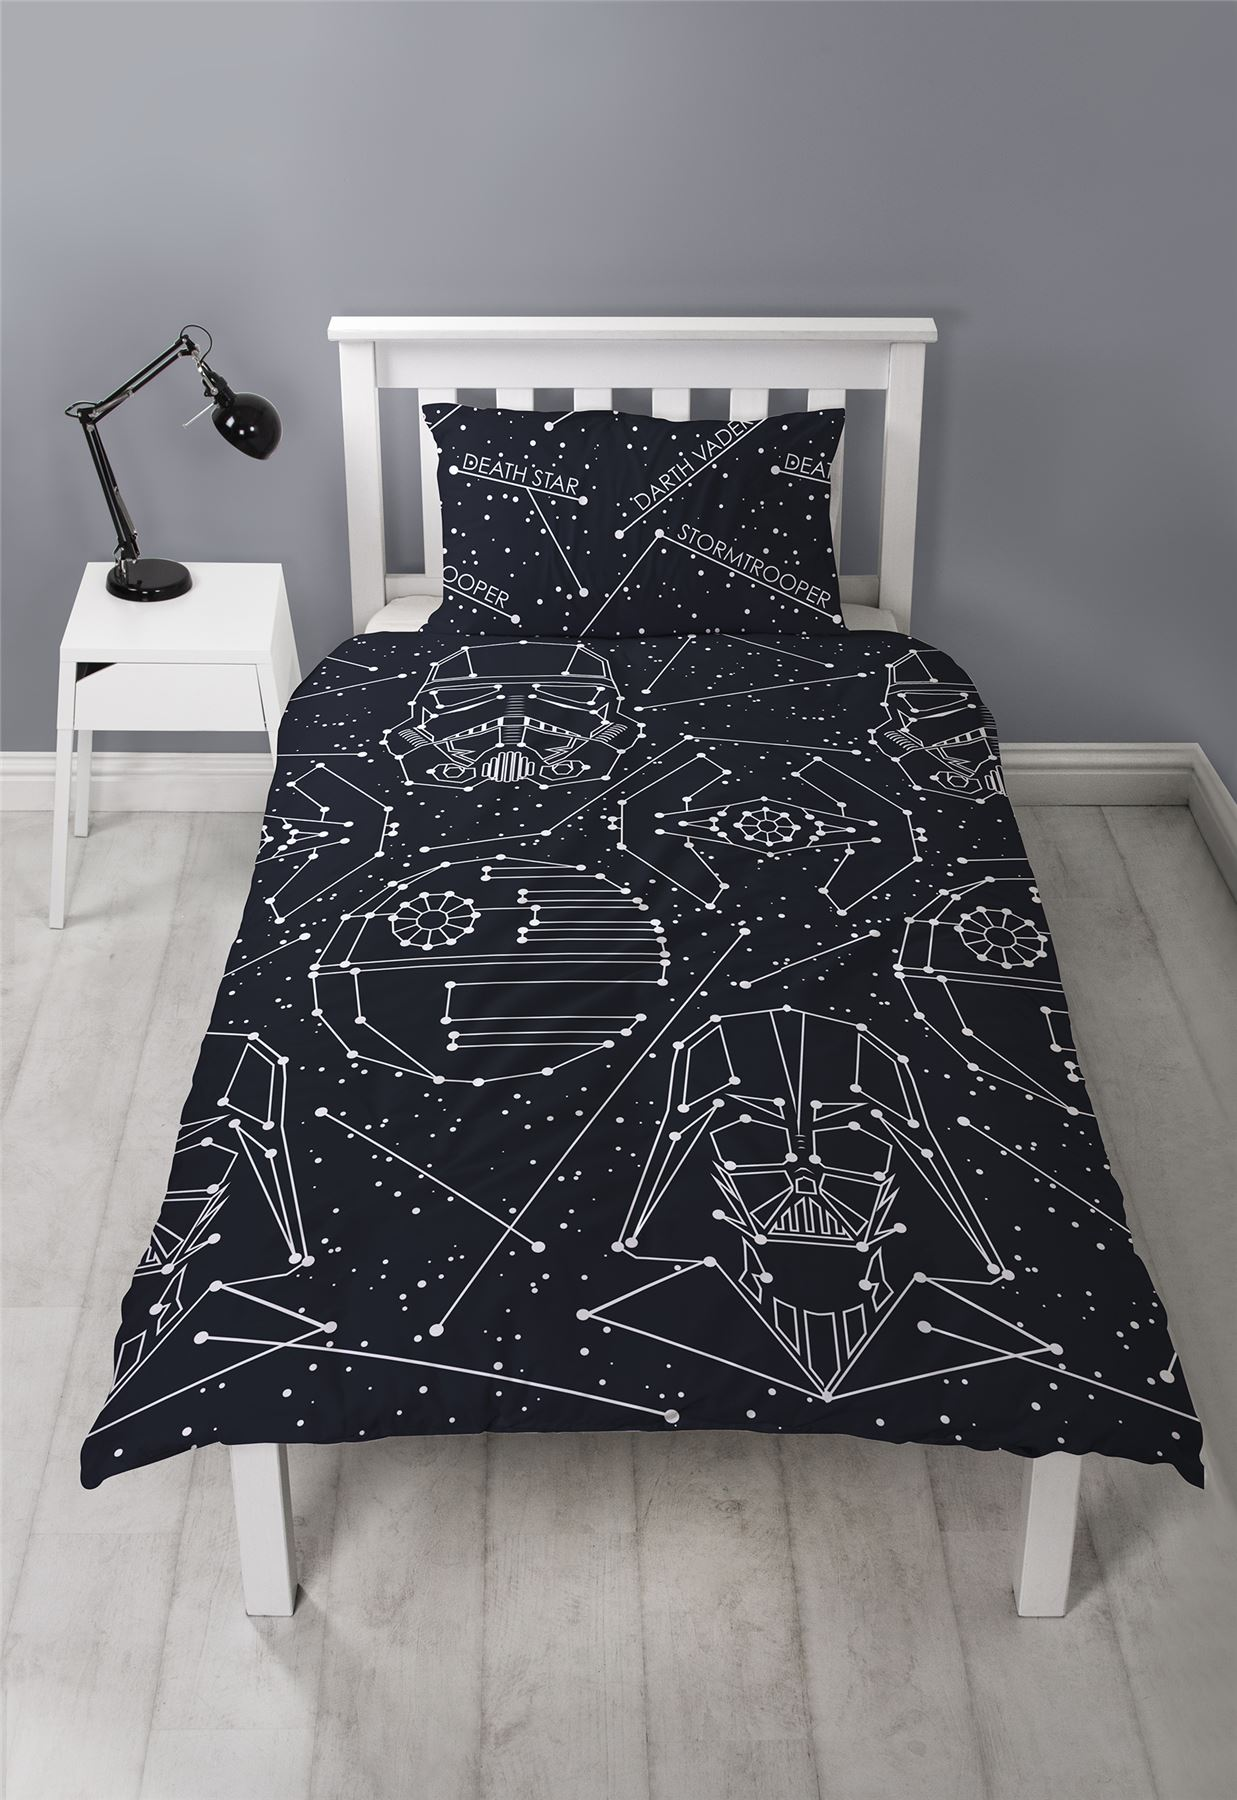 Official-Star-Wars-Licensed-Duvet-Covers-Single-Double-Jedi-Darth-Vader-Lego thumbnail 39